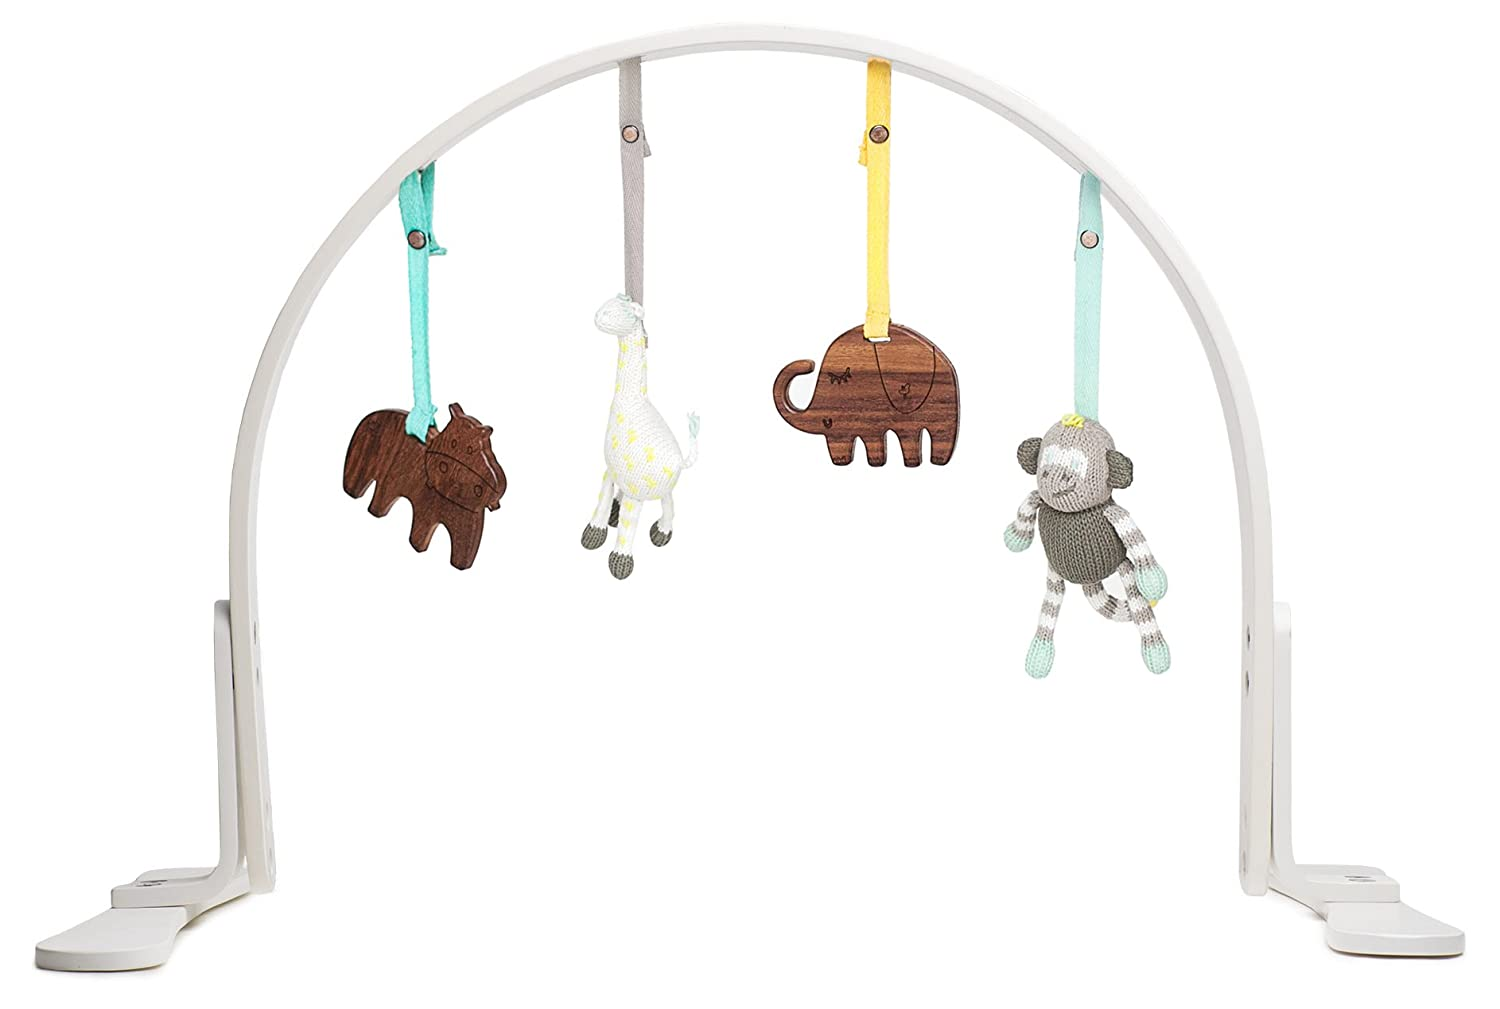 Finn + Emma Play Gym, Organic Cotton and Natural Wood with Hand-Knit Rattle and Teether Stroller Toys for Baby Boy or Girl – Jungle - White